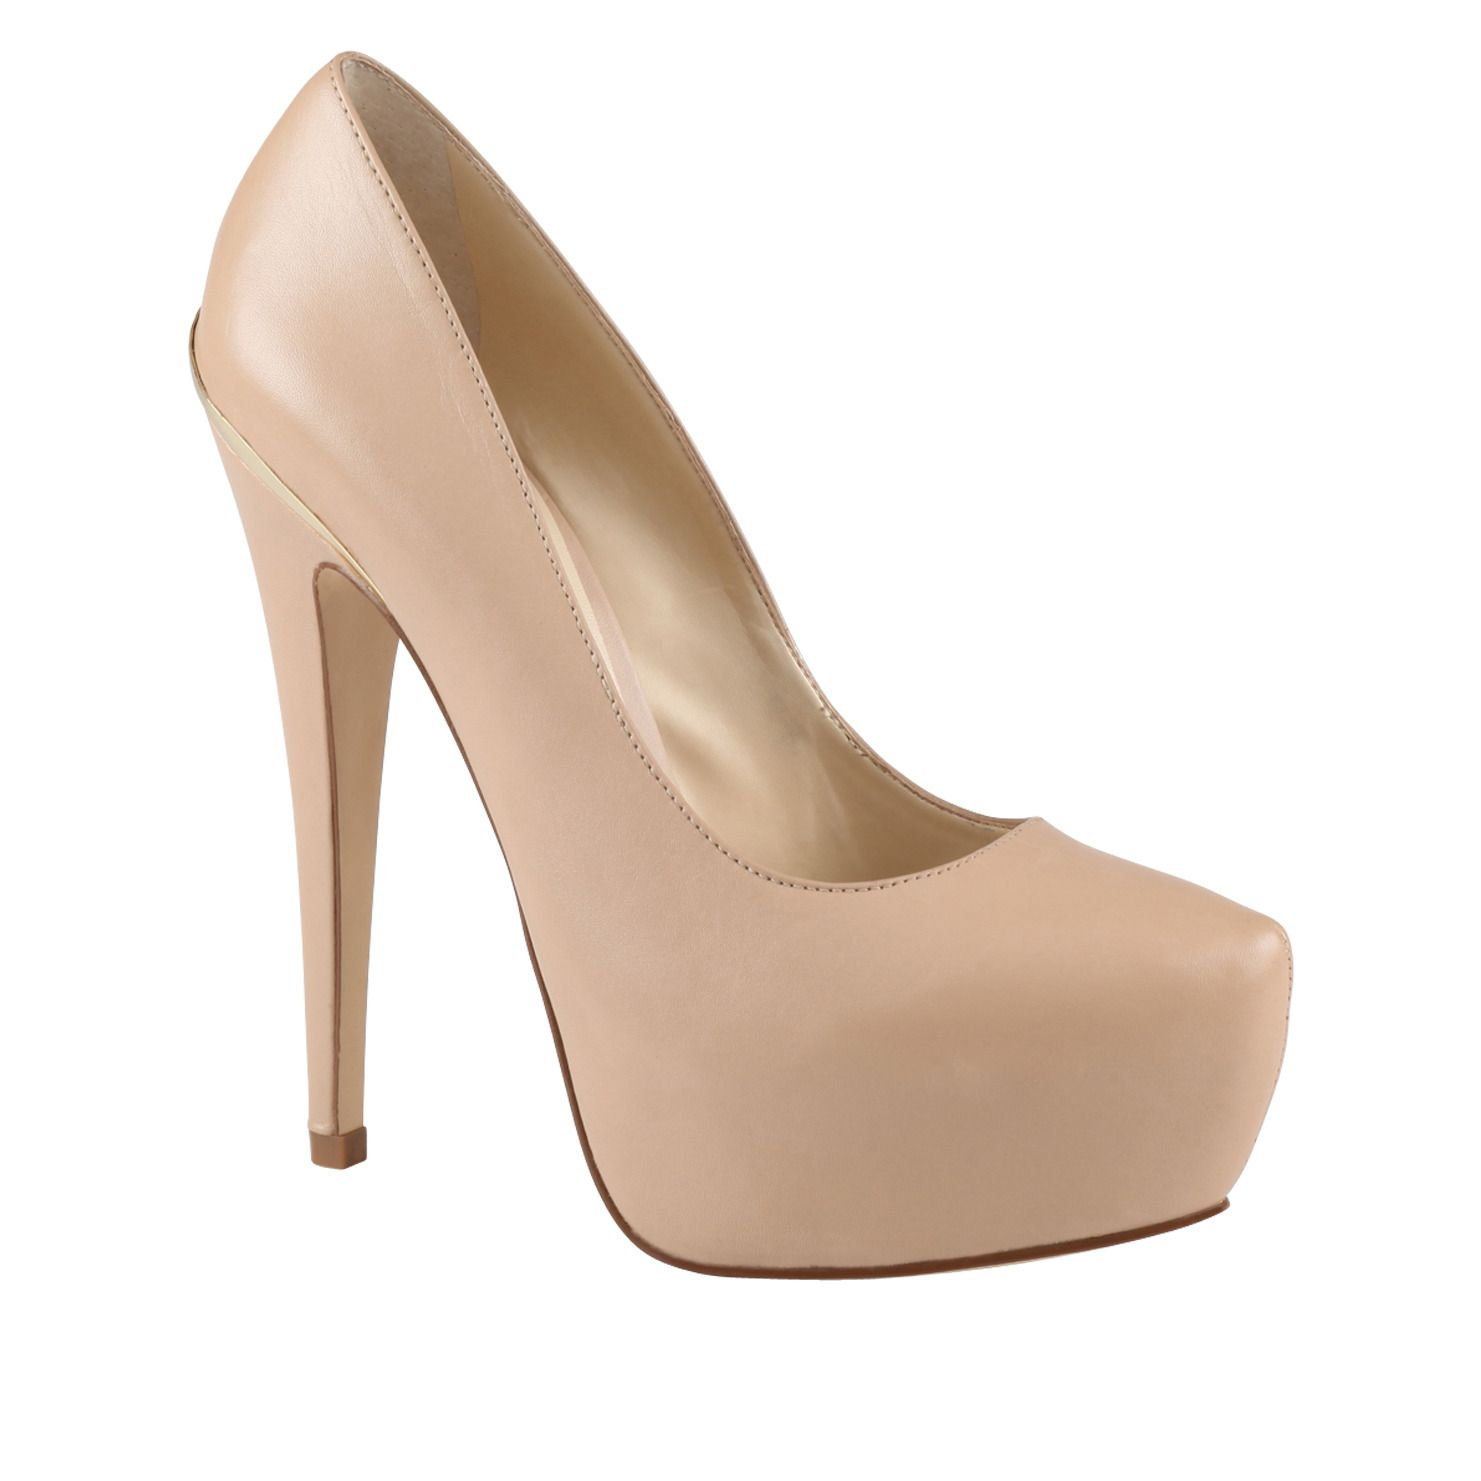 MALINA - women's high heels shoes for sale at ALDO Shoes.